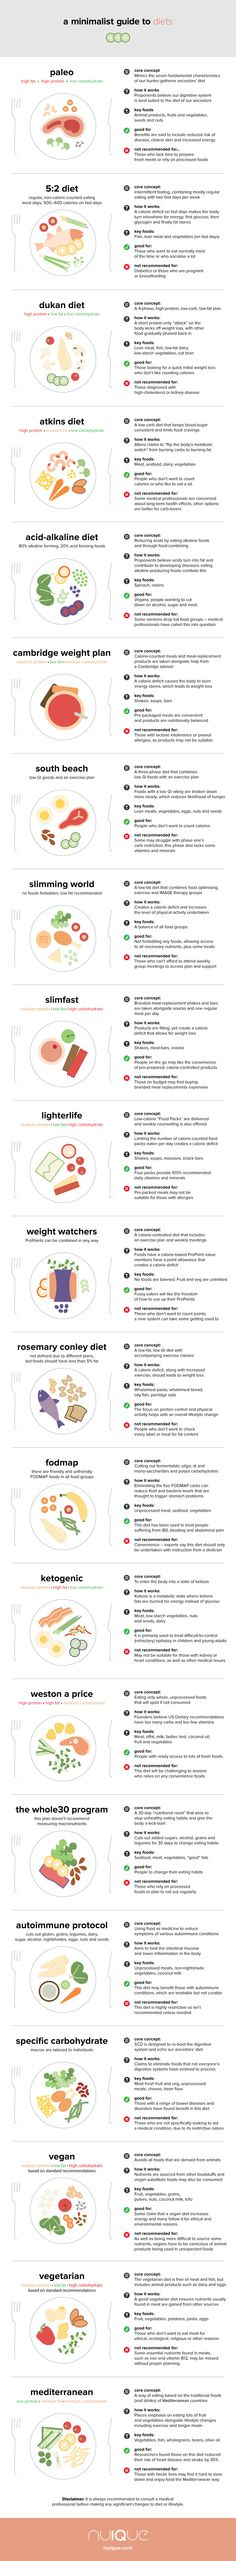 The Complete Minimalist Guide to Diets